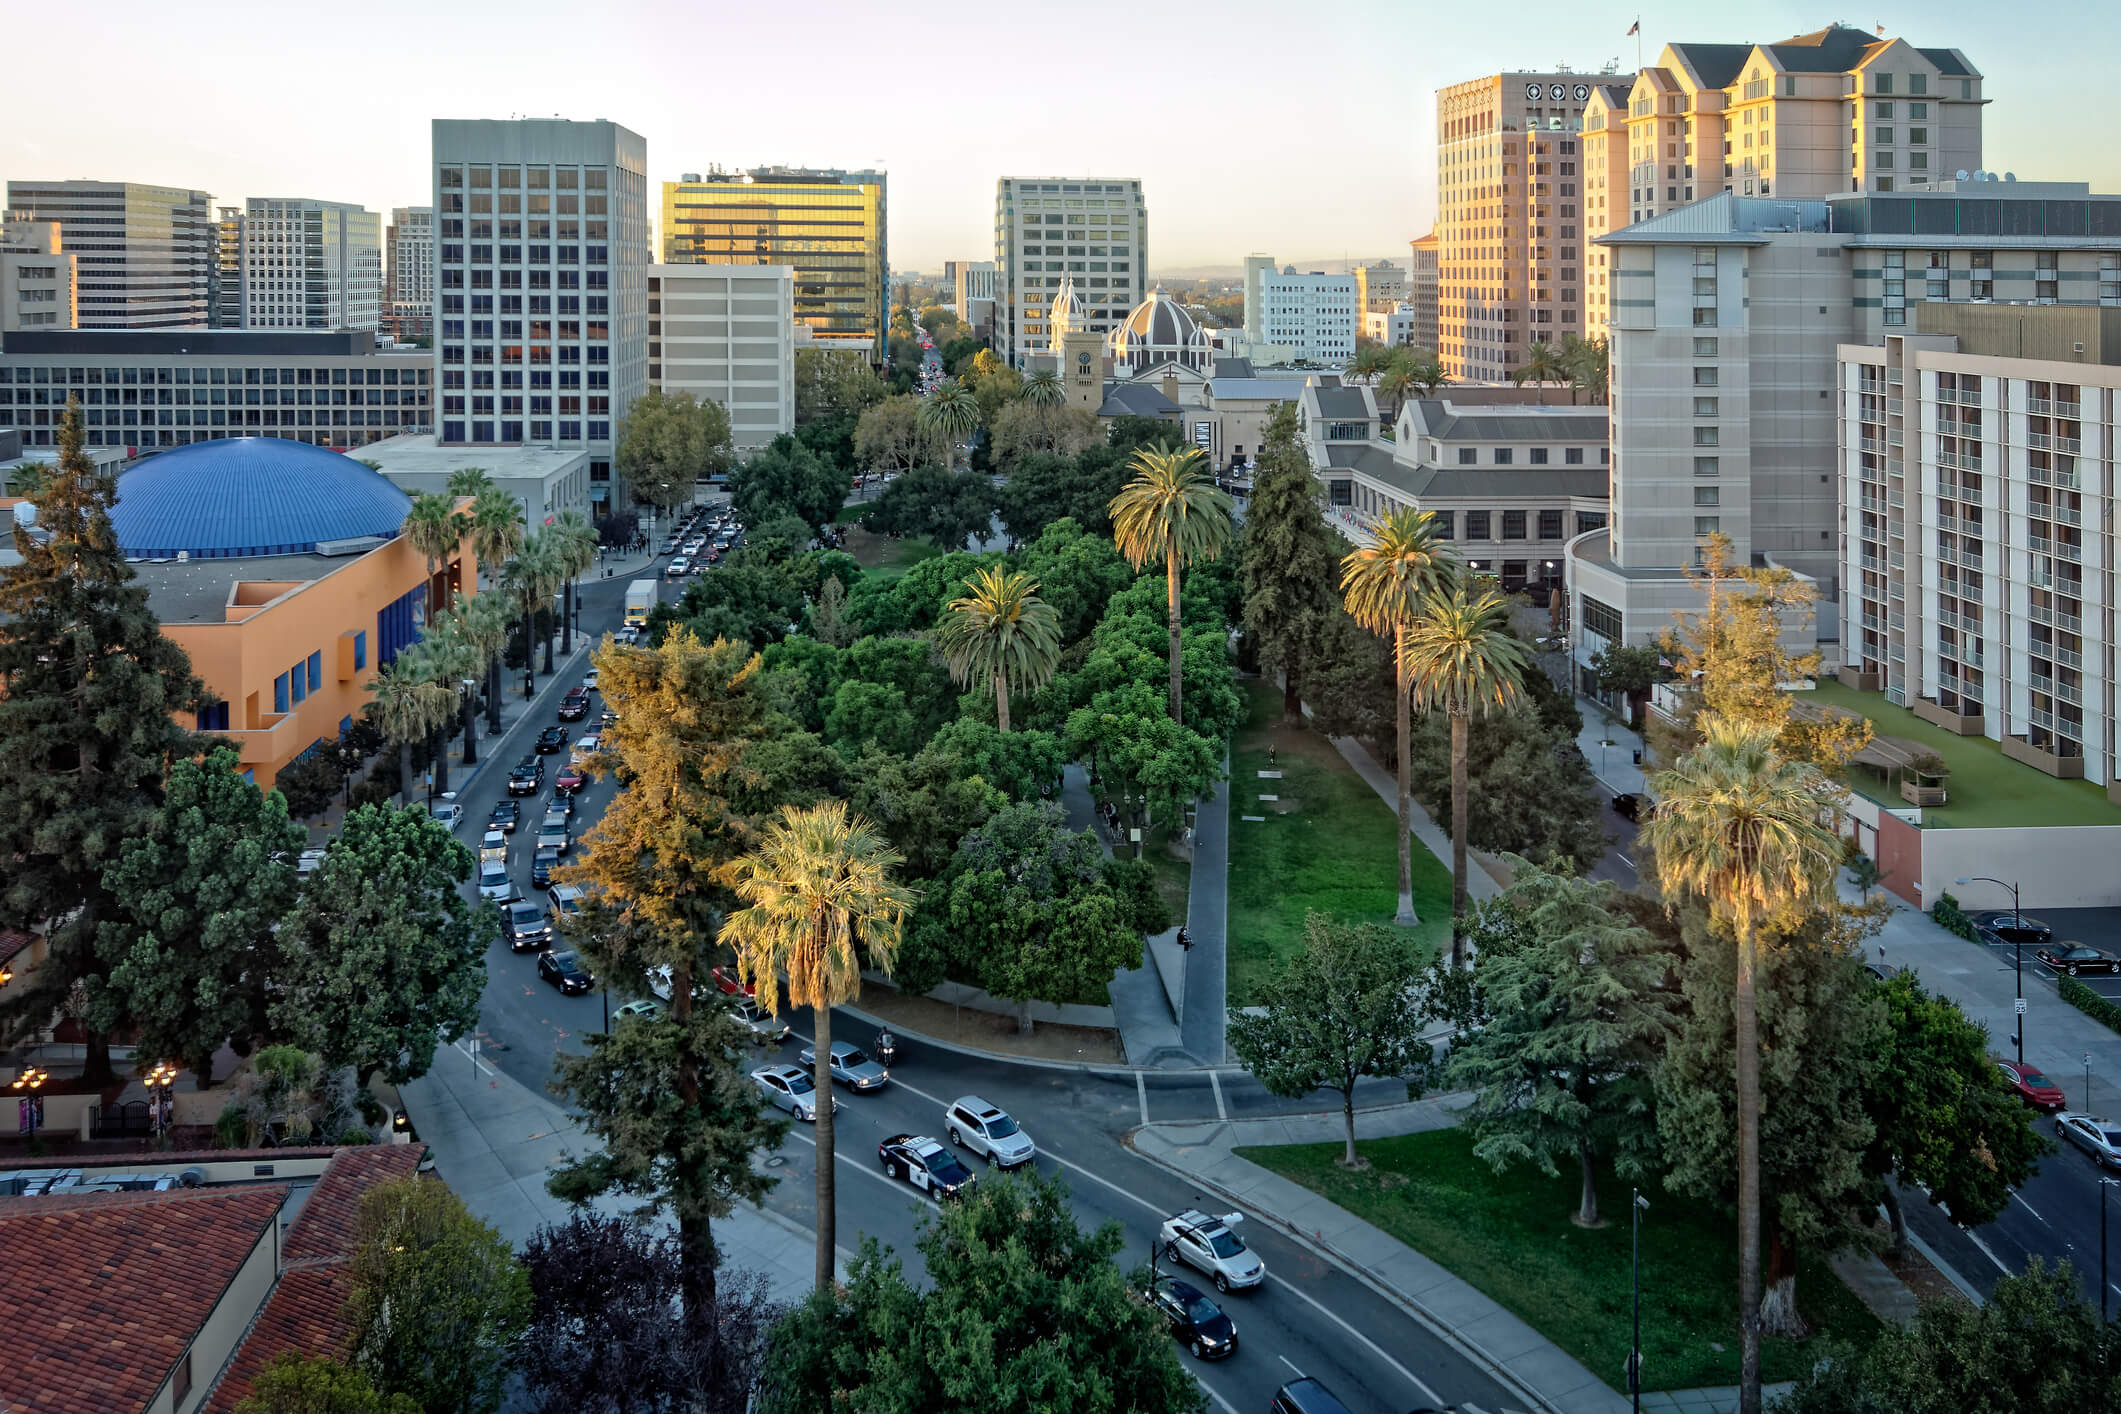 This is a photo of downtown San Jose, California